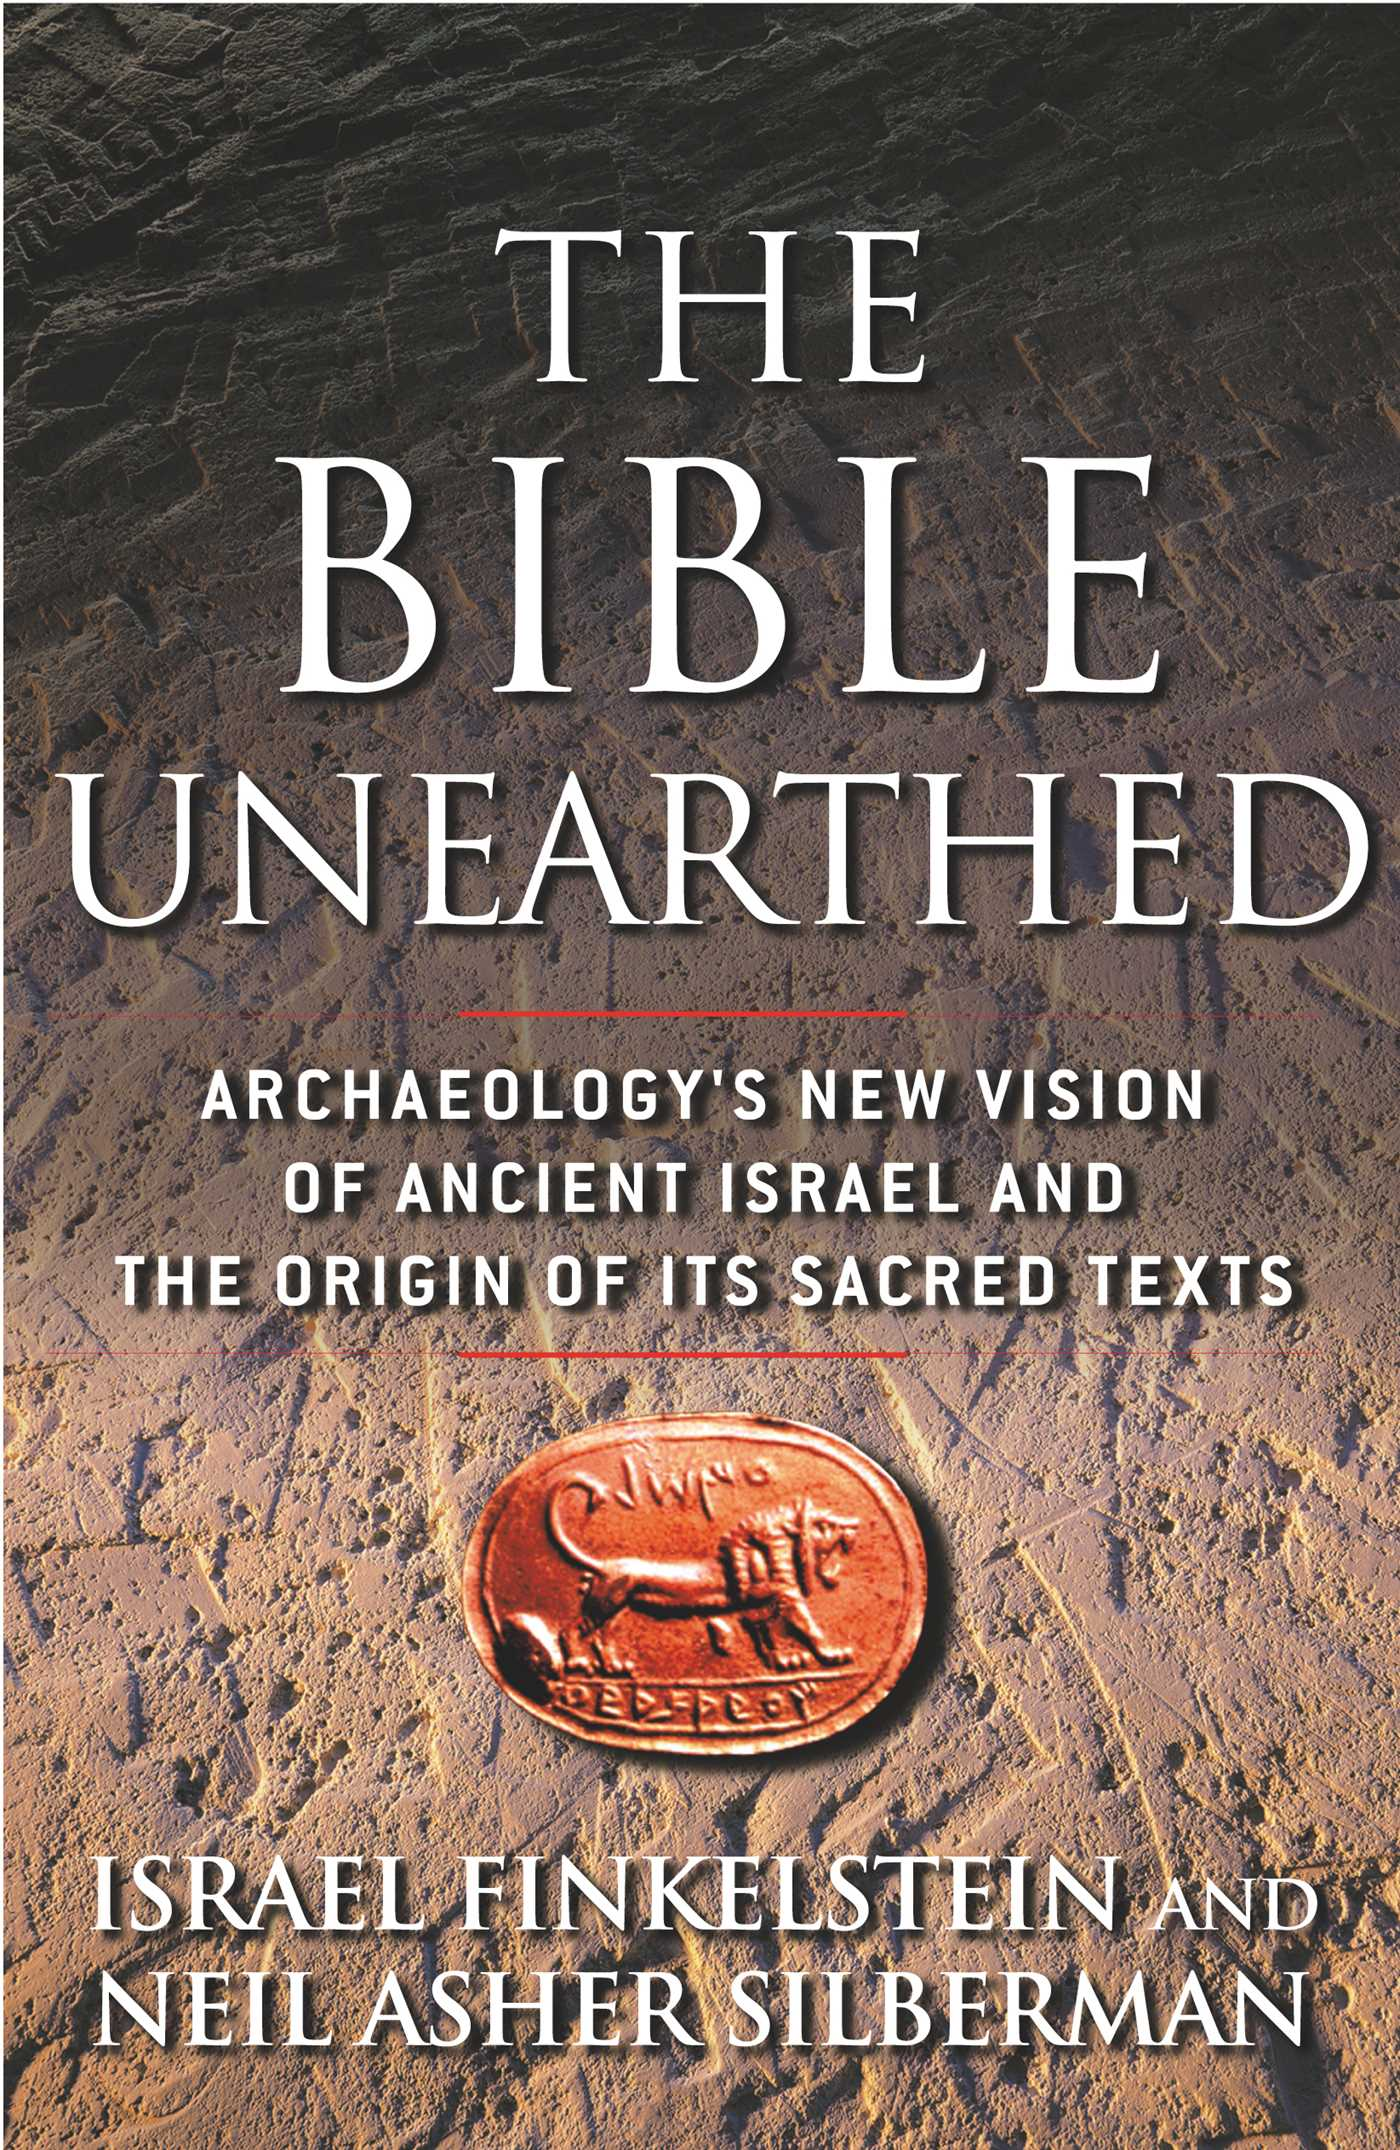 The bible unearthed 9780743223386 hr